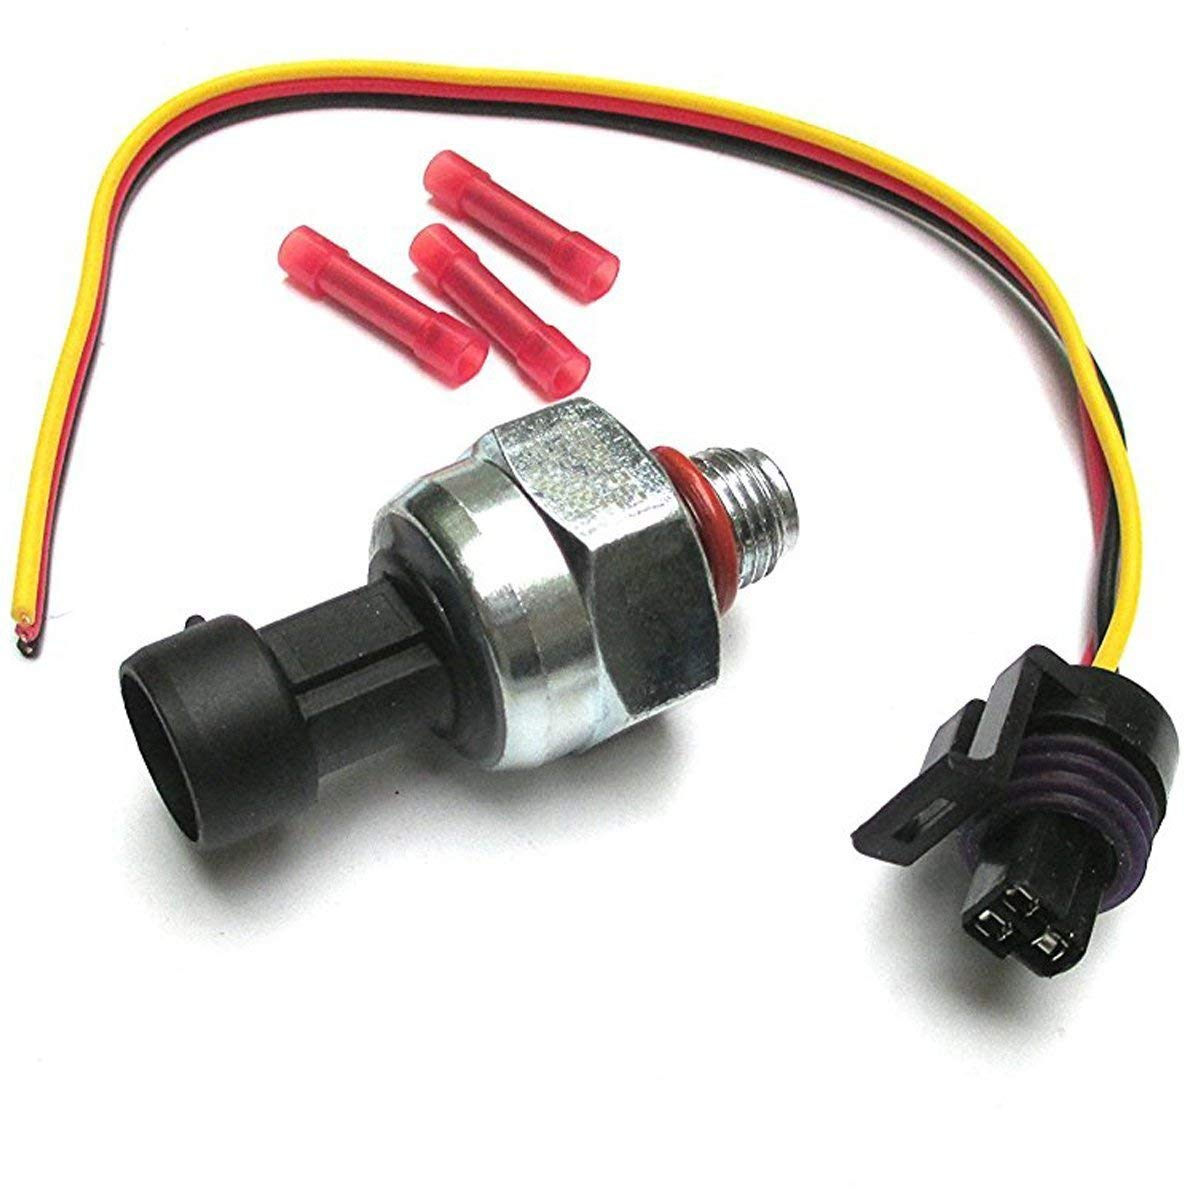 Aquiver Auto Parts New Fuel Injection Pressure Sensor ICP with Pigtail for Ford 7.3L Powerstroke ICP102 F4TZ-9F838-A F6TZ-9F838-A 1807329C92 5S2062